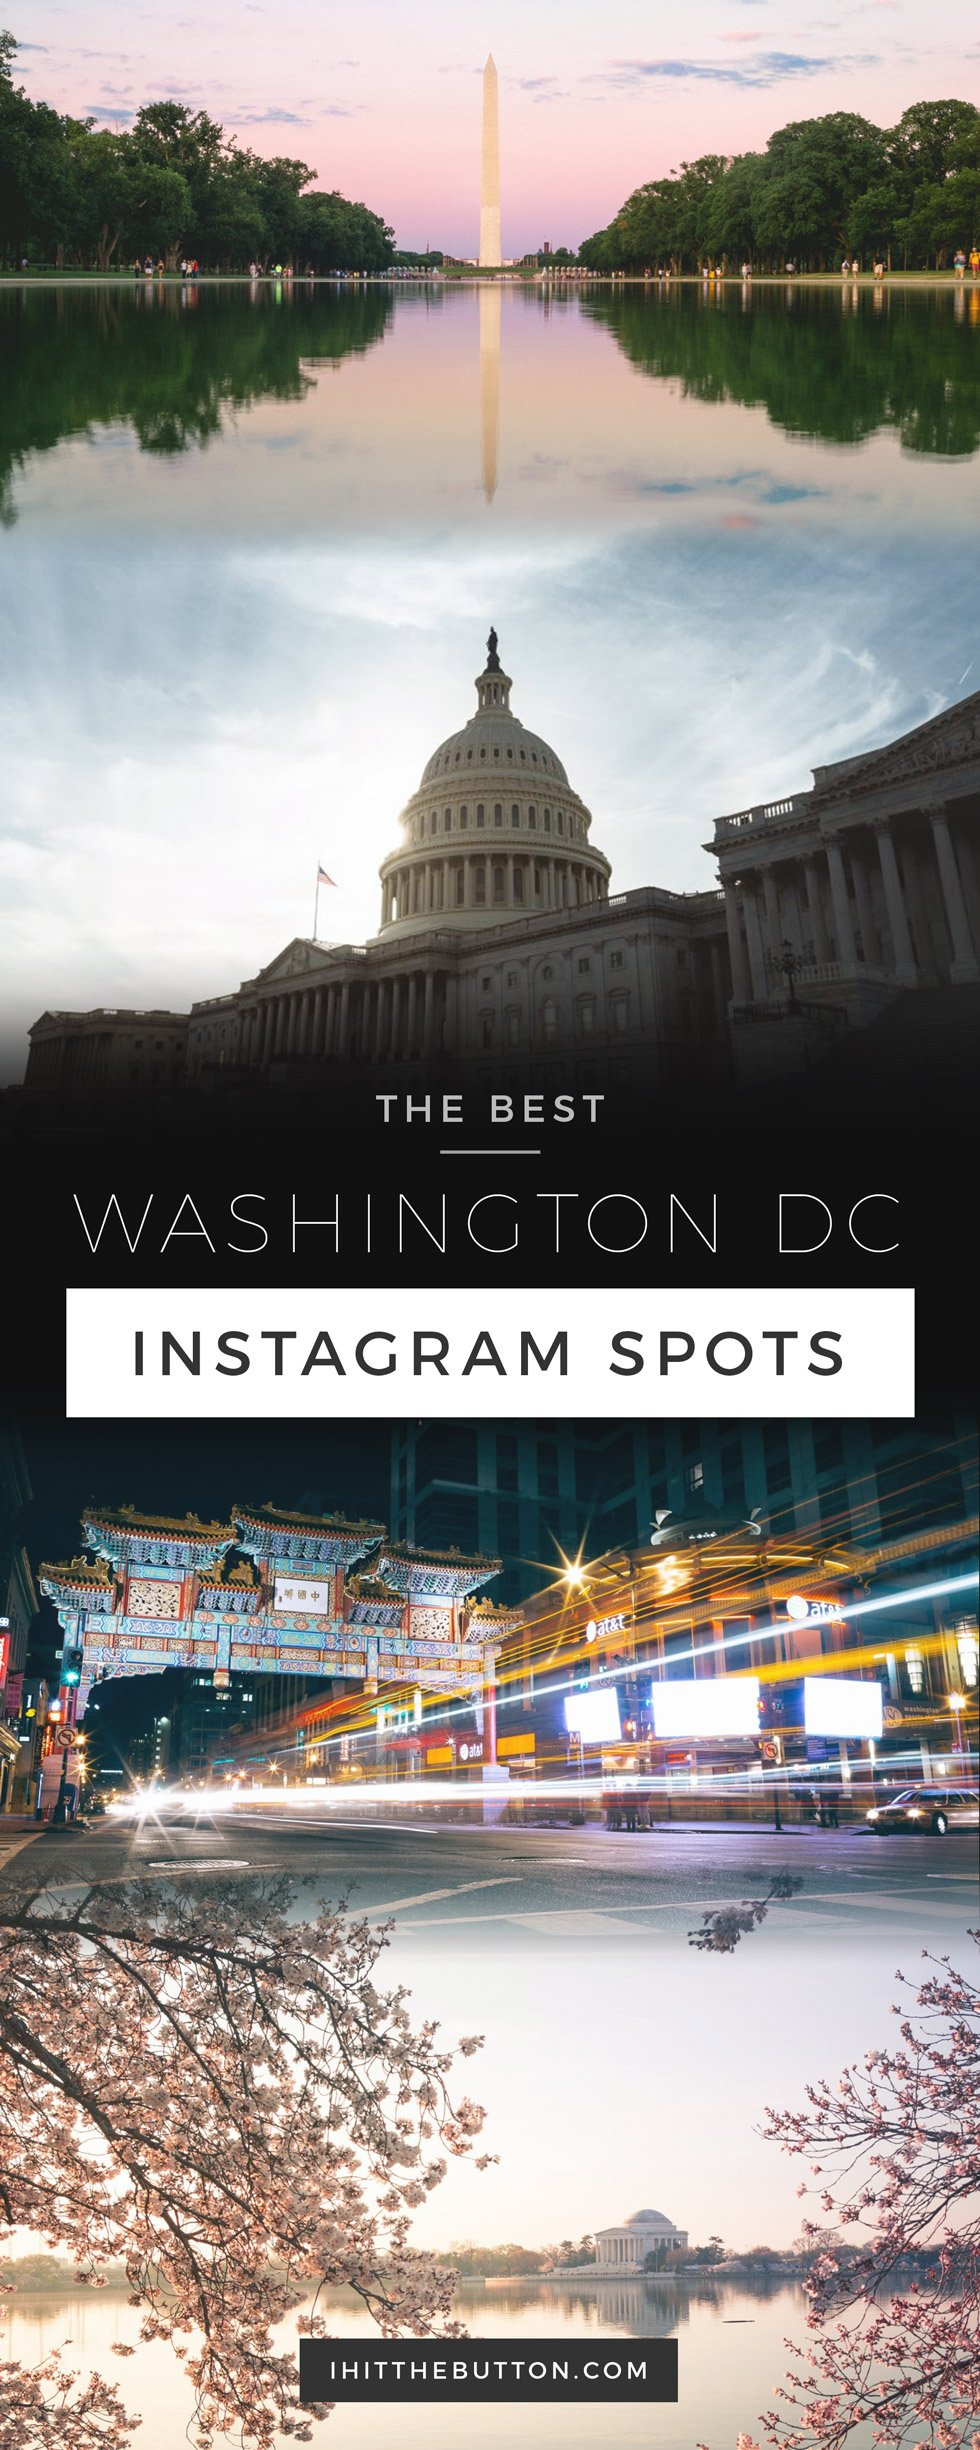 The Best Washington DC Instagram Spots // ihitthebutton.com